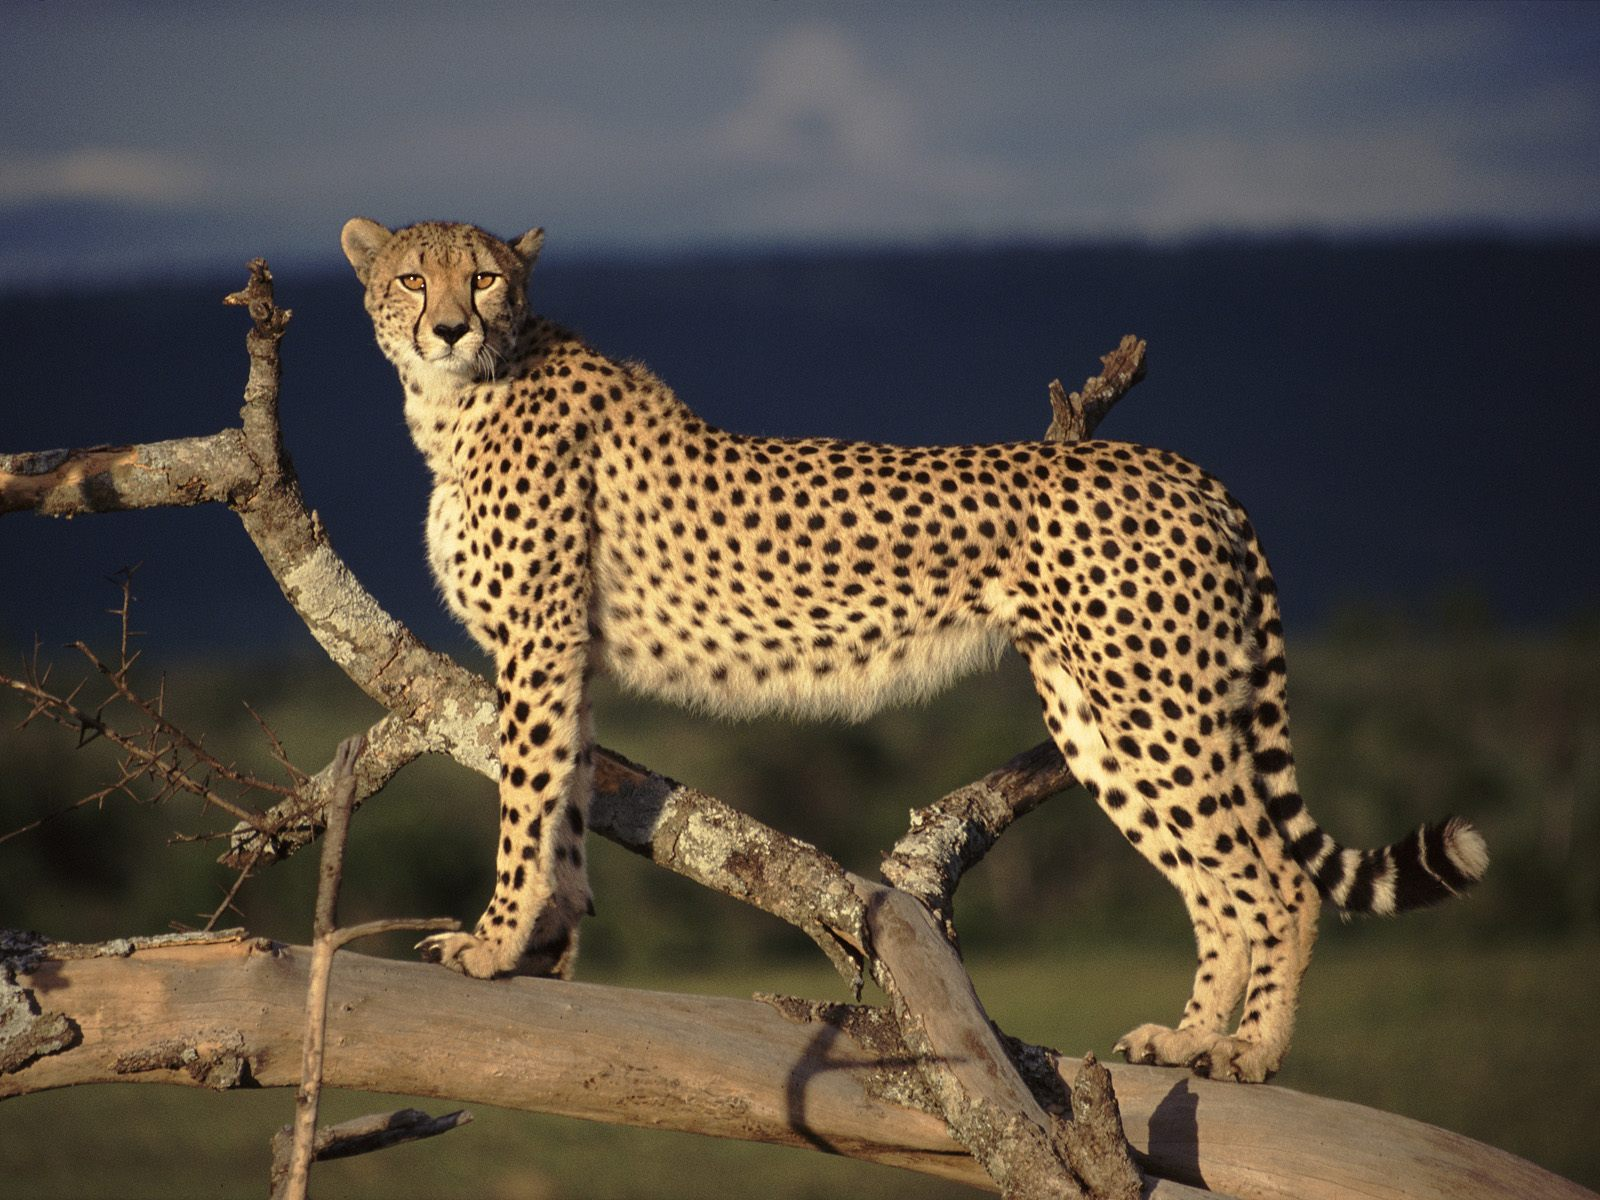 Beautiful Wild Animals: Cheetahs, dangerous animals with great speed